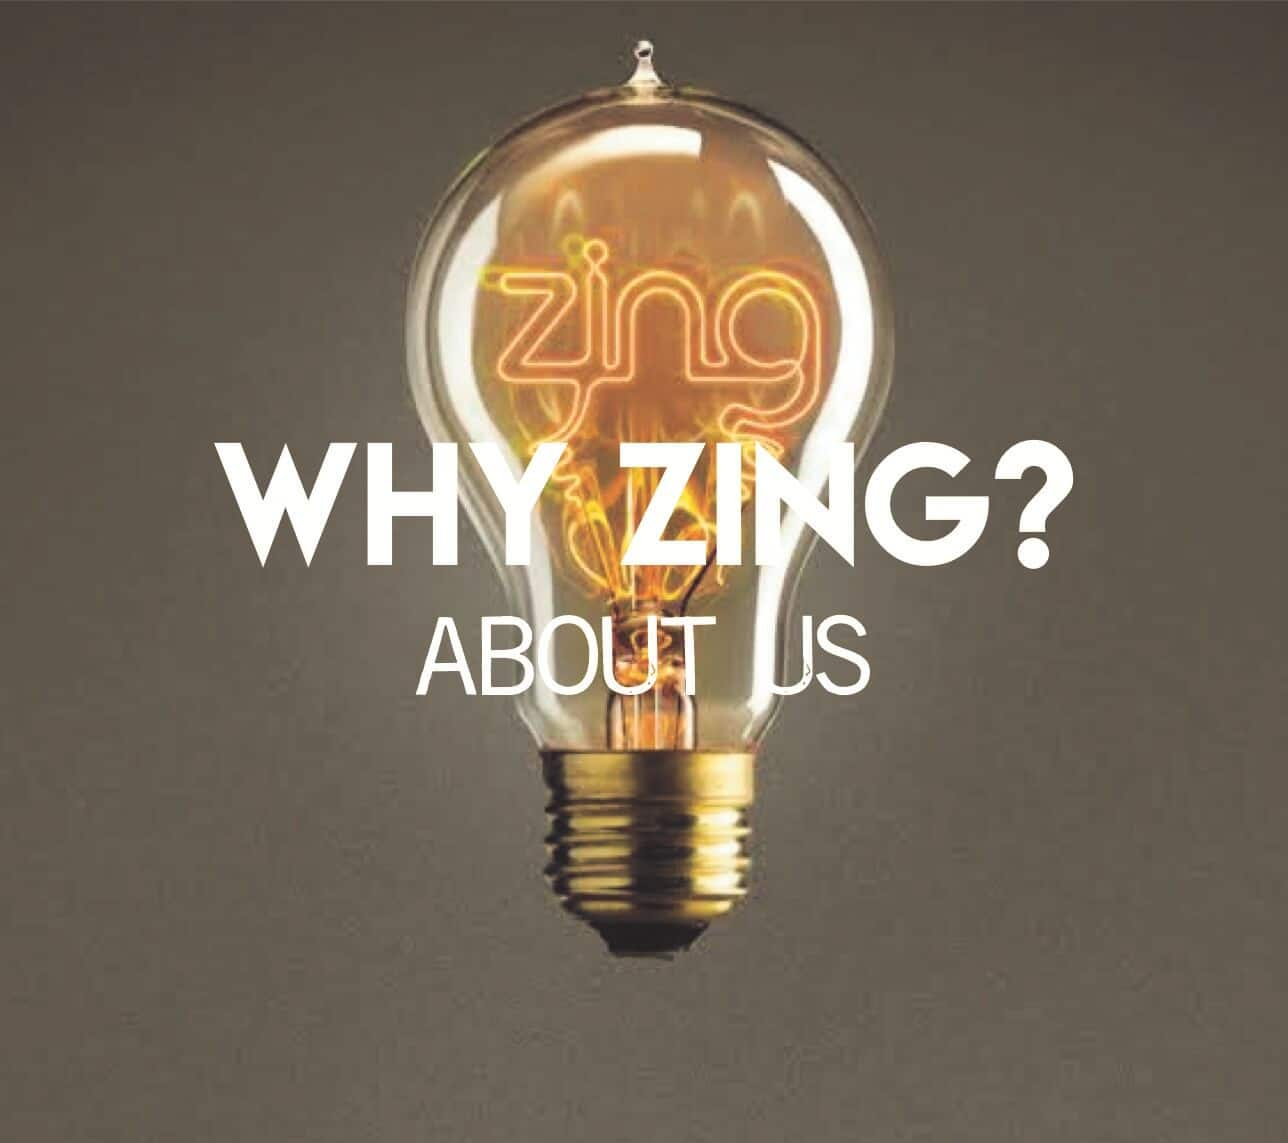 why zing?